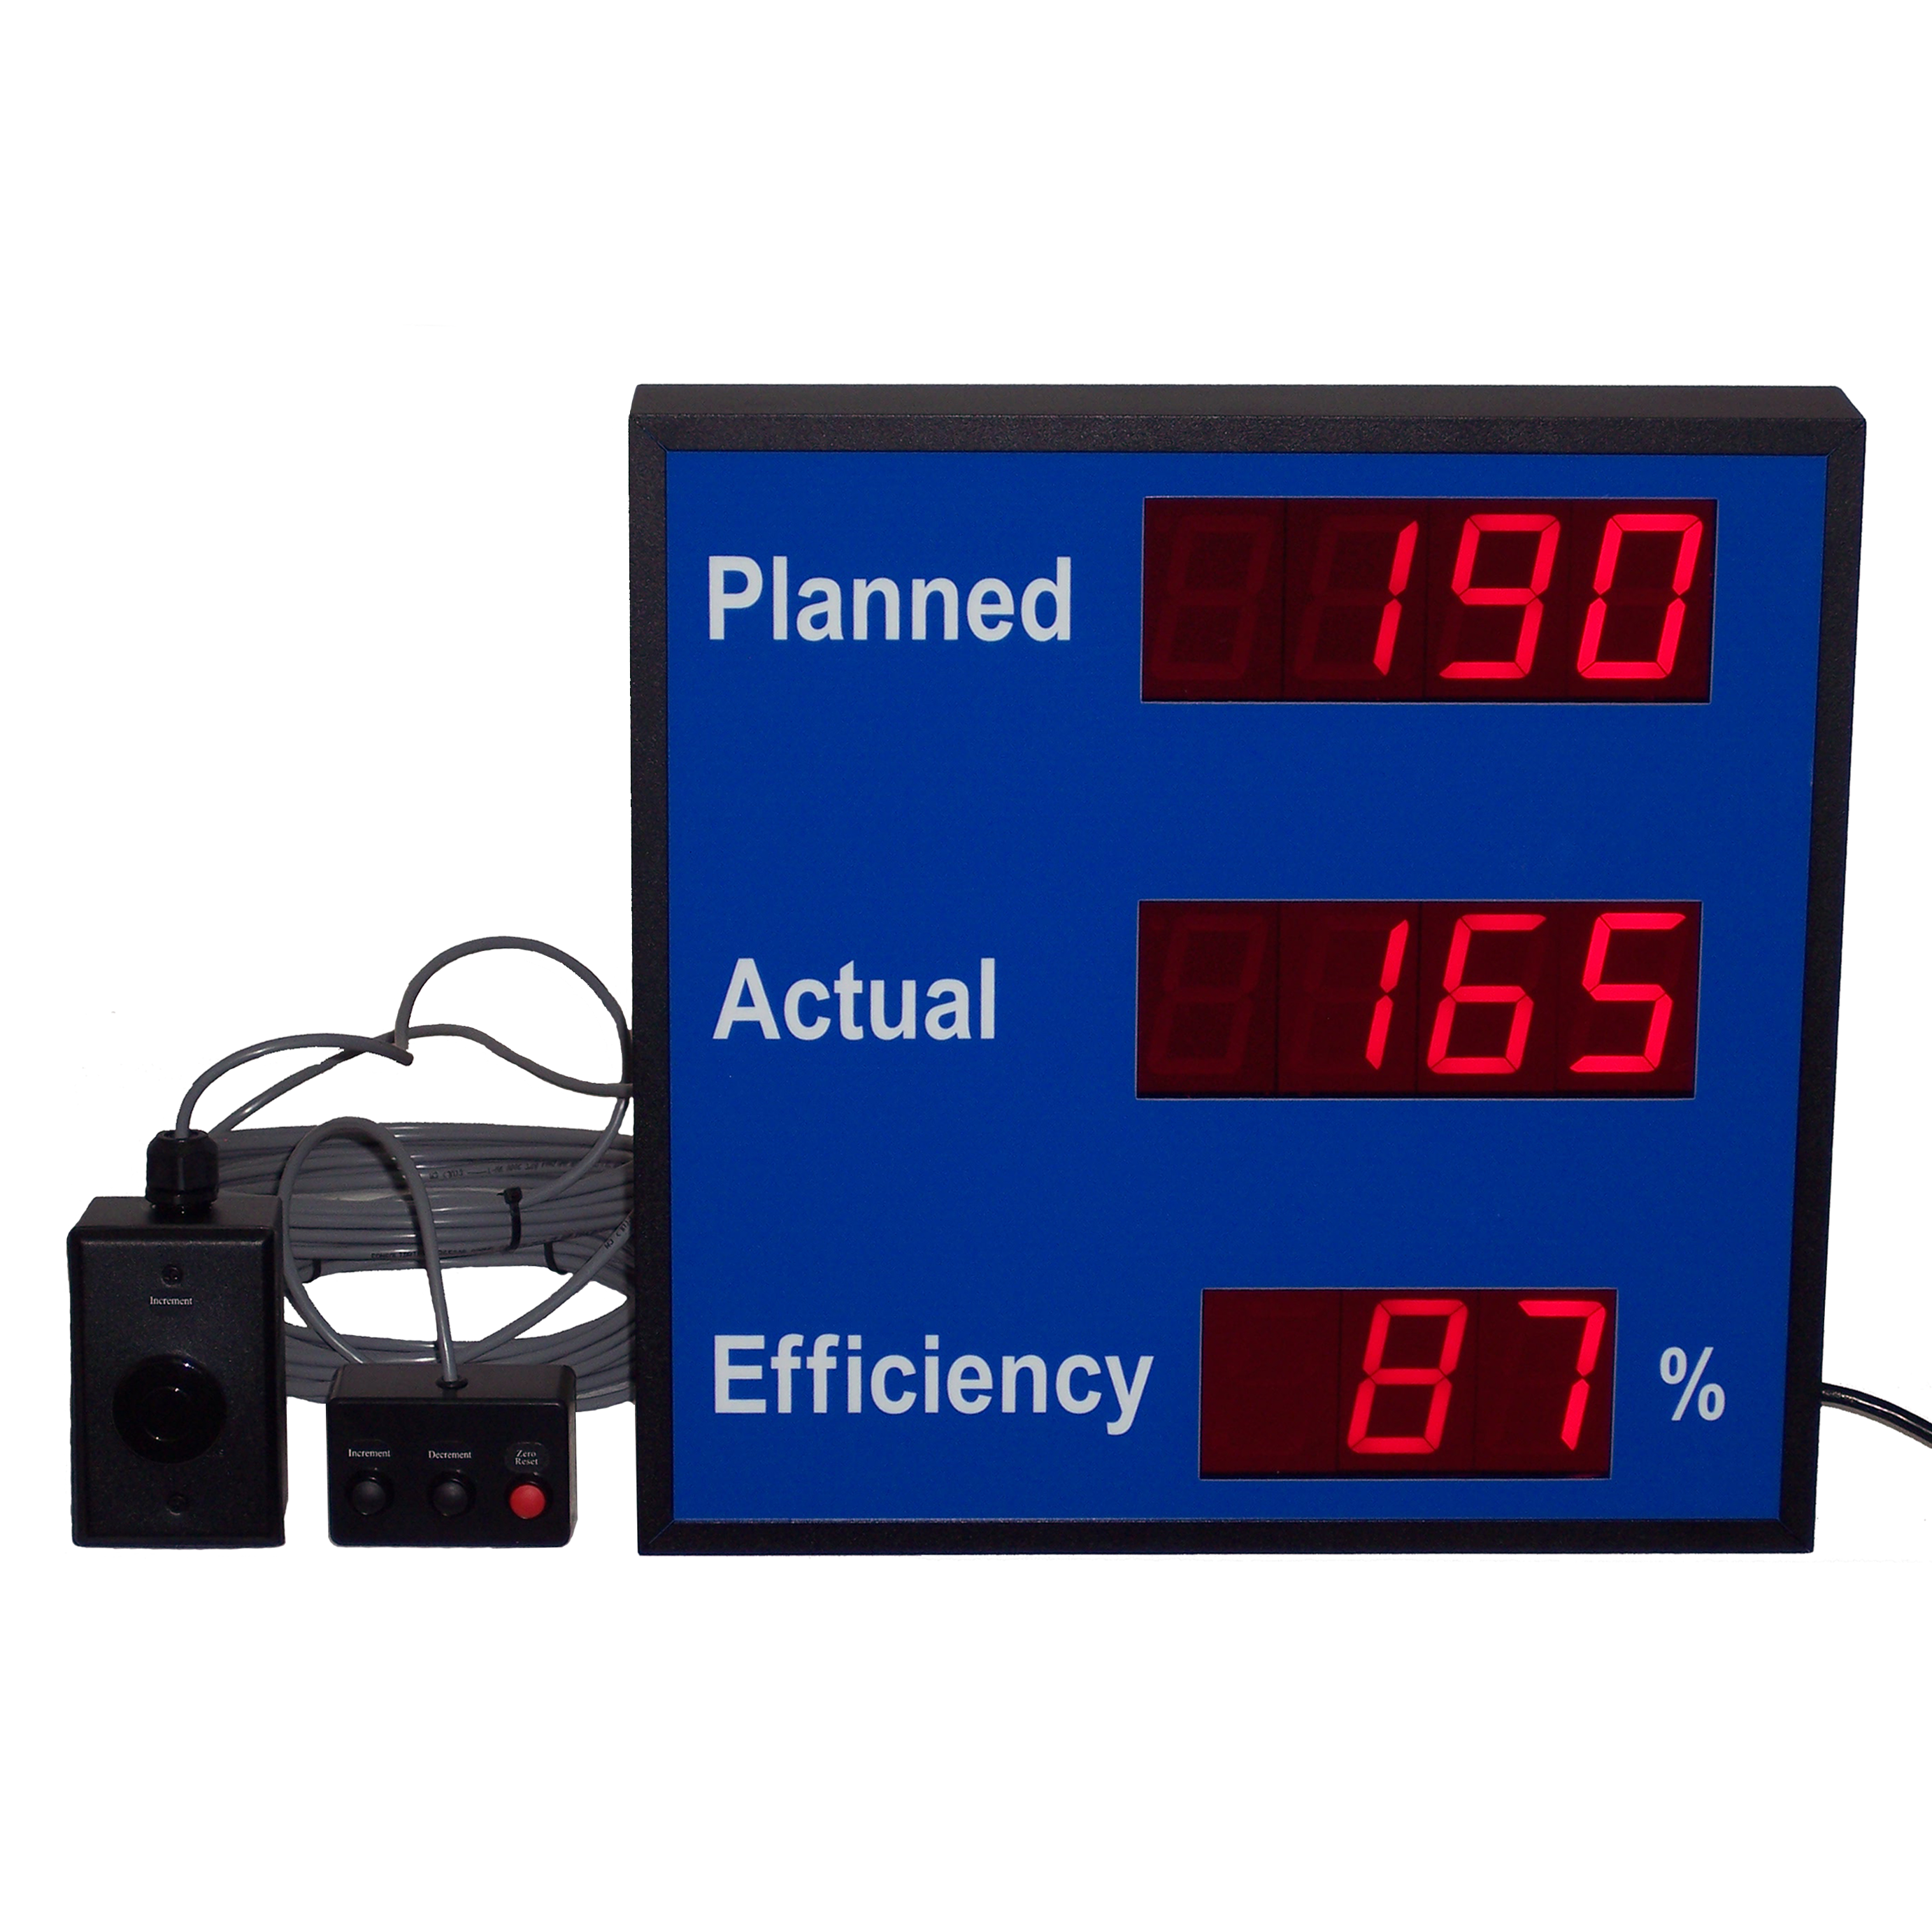 """(DC-25C-2-EFF-RP) 2.3 Inch LED Digital Production Efficiency Counter with Wired 40mm Palm Switch for """"Actual"""" Count and Wired Environmentally Sealed Push-Buttons for Setting the """"Planned"""" Count"""